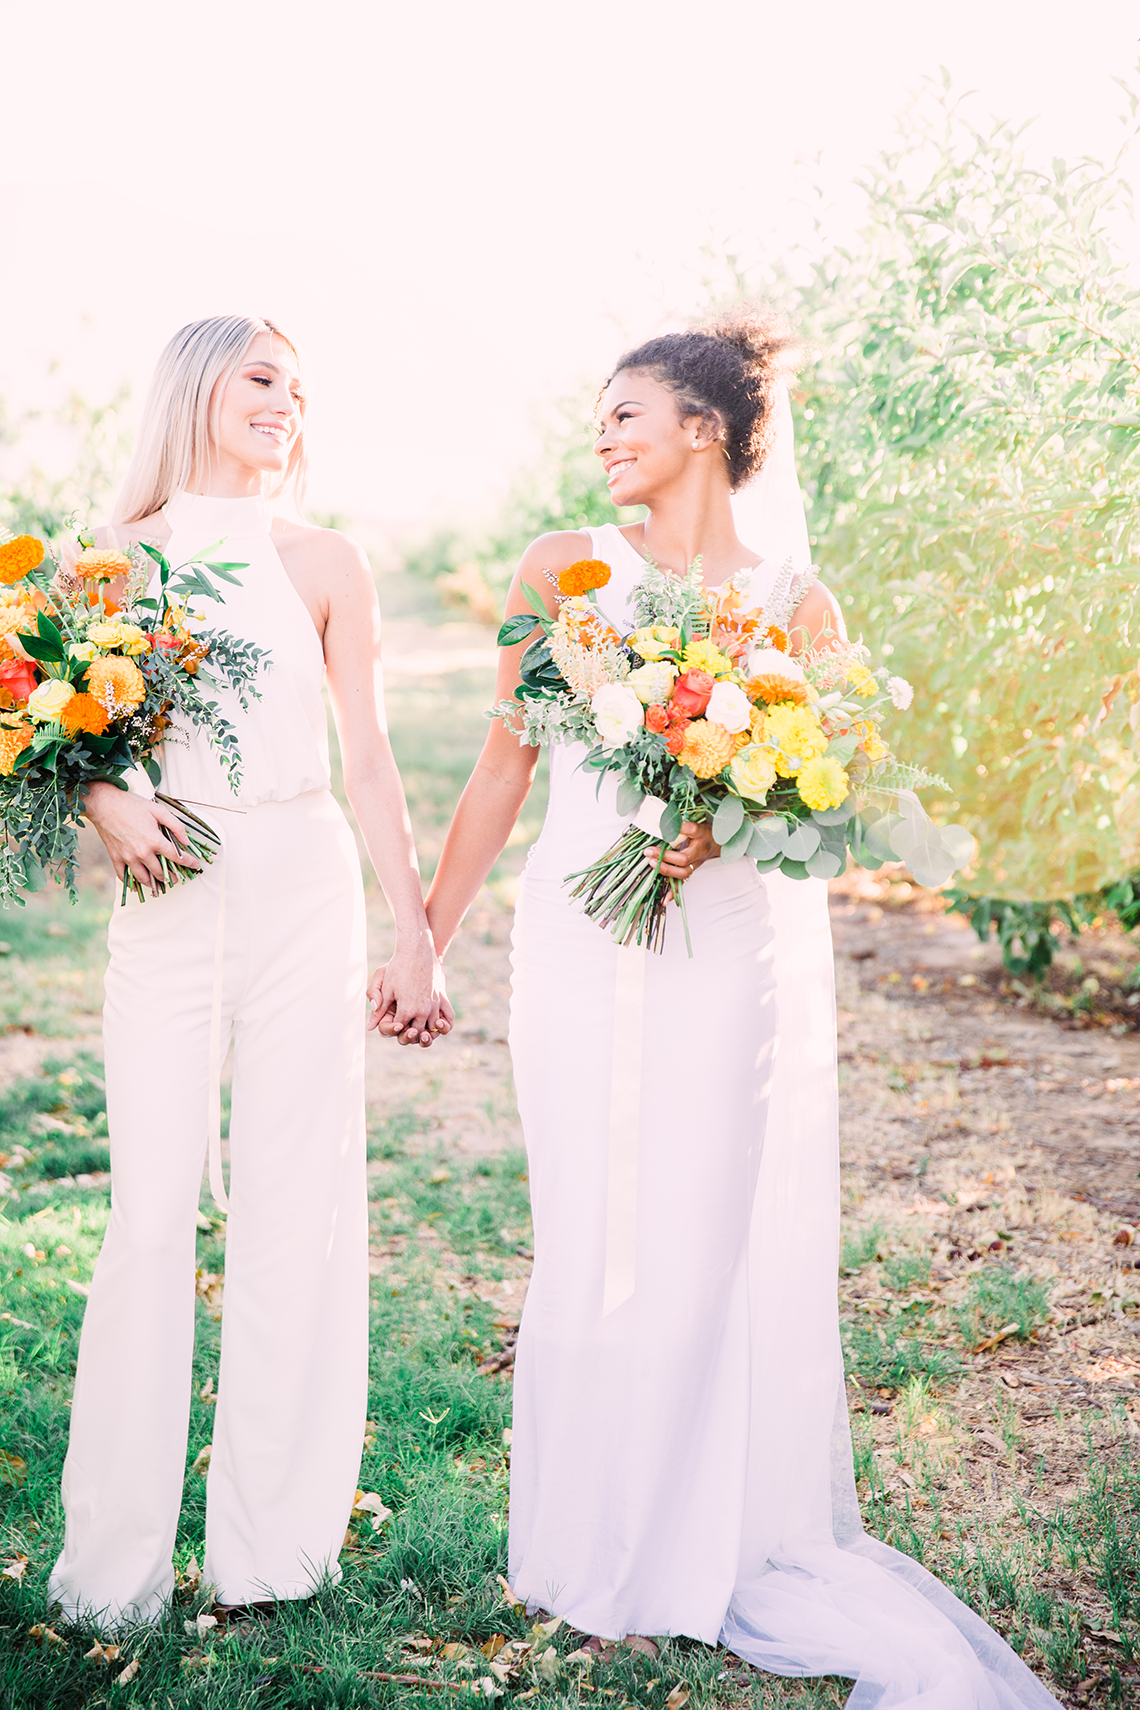 Same Sex Wedding Inspiration with Bright Citrus Decor – Alycia Moore Photography 26